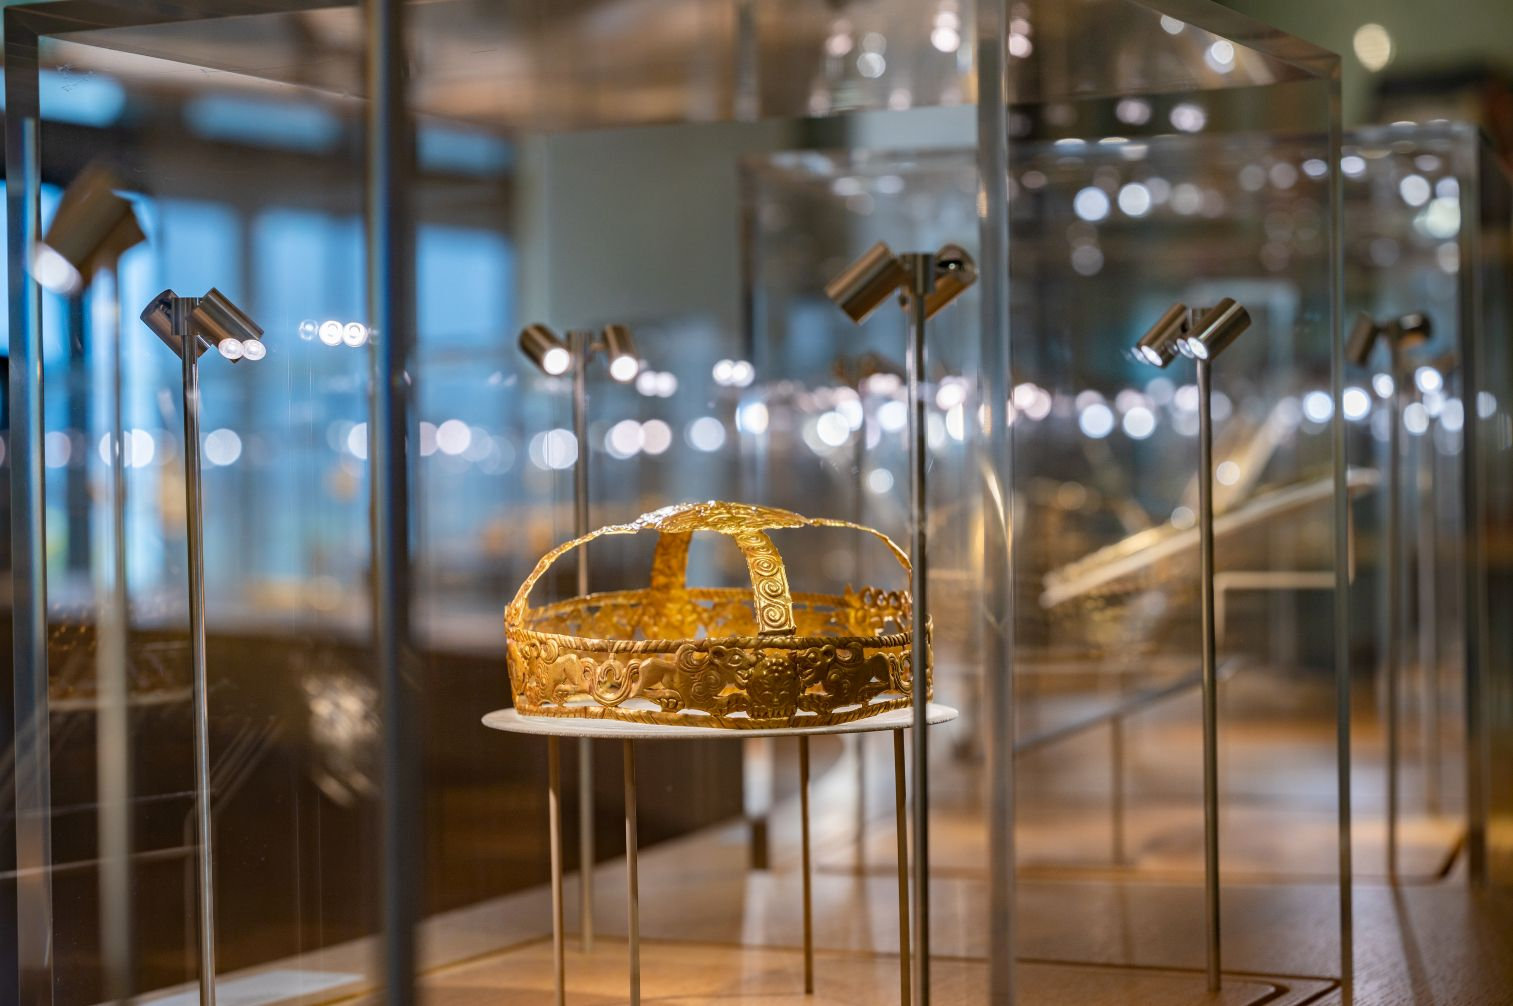 L'ÉCOLE's Latest Exhibition Draws From 3,000 Years of Glittering Golden History